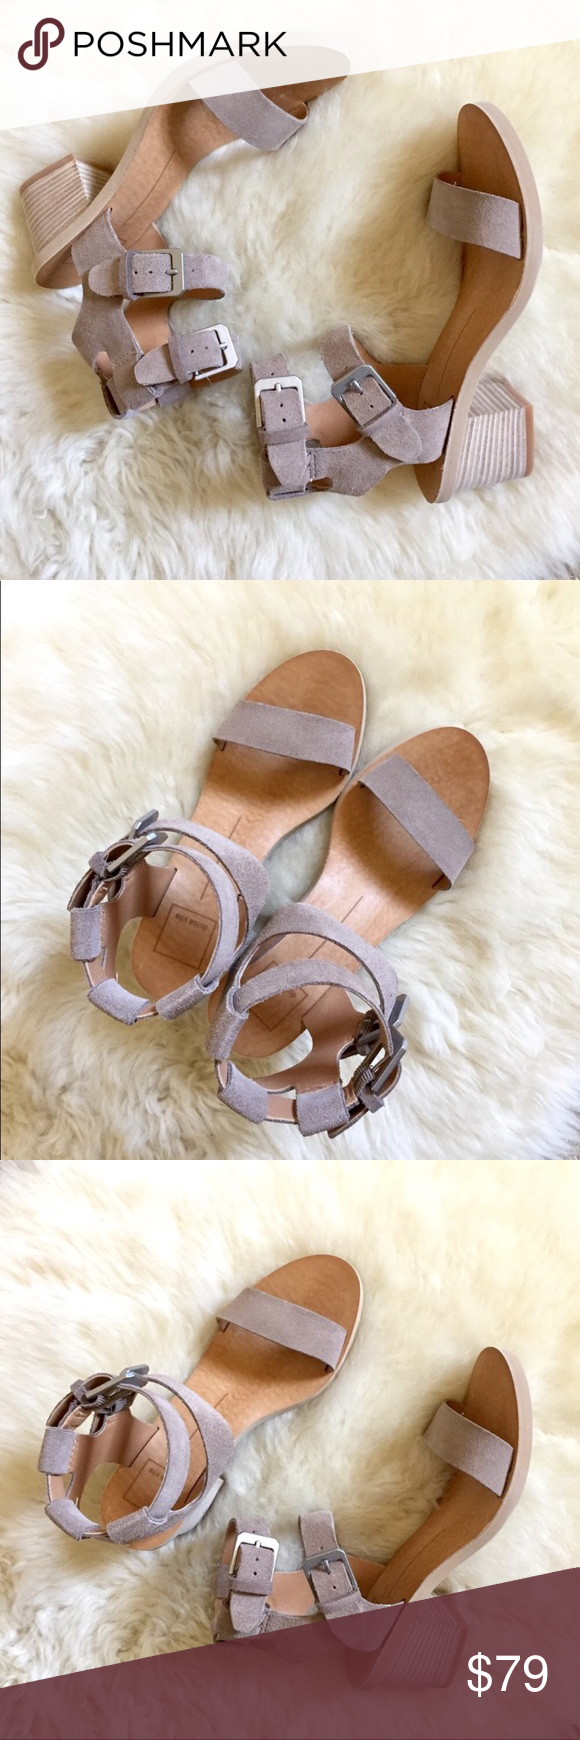 83f2e3d32402 Dolce Vita West Dual Ankle Strap Taupe Sandals New In Box- Taupe Suede  Heeled Sandals